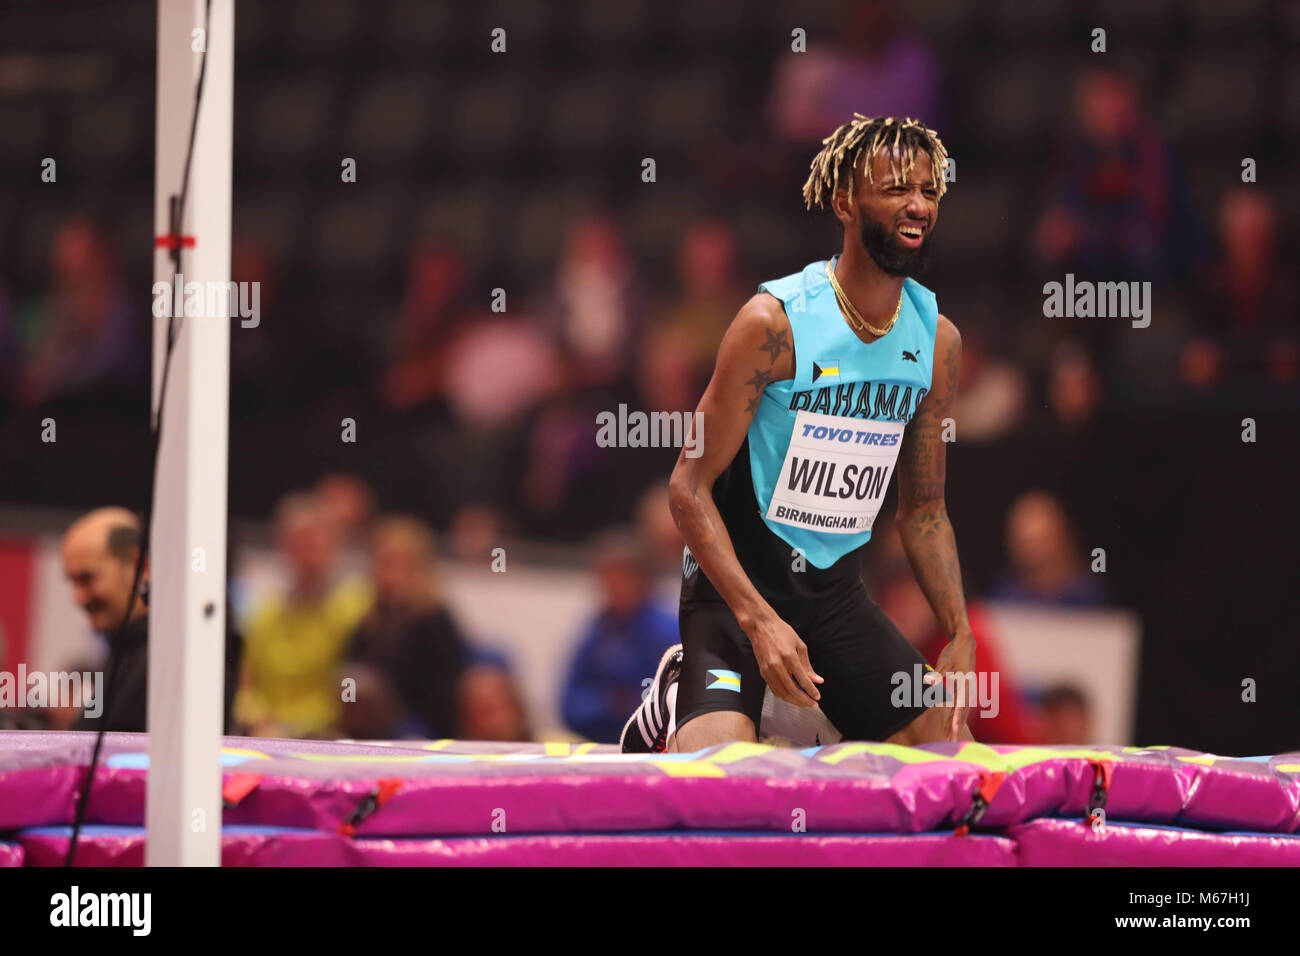 Birmingham, UK. 1st March, 2018. Donald THOMAS (BAHAMAS)  looks dissapointed during  the mens high jump at the IAAF - Stock Image